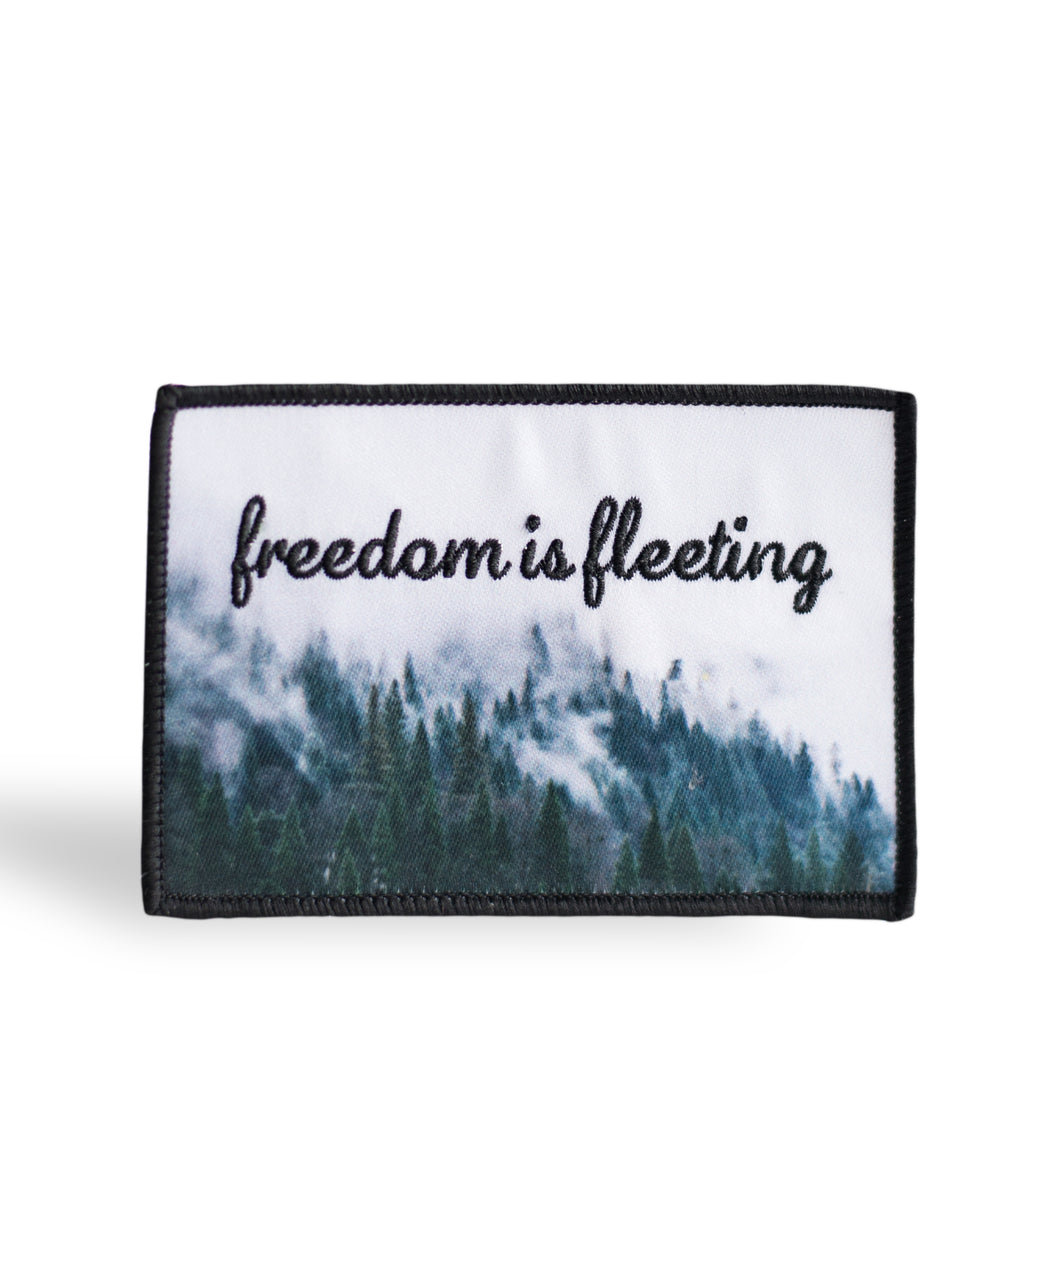 Freedom is Fleeting - Photo Patch